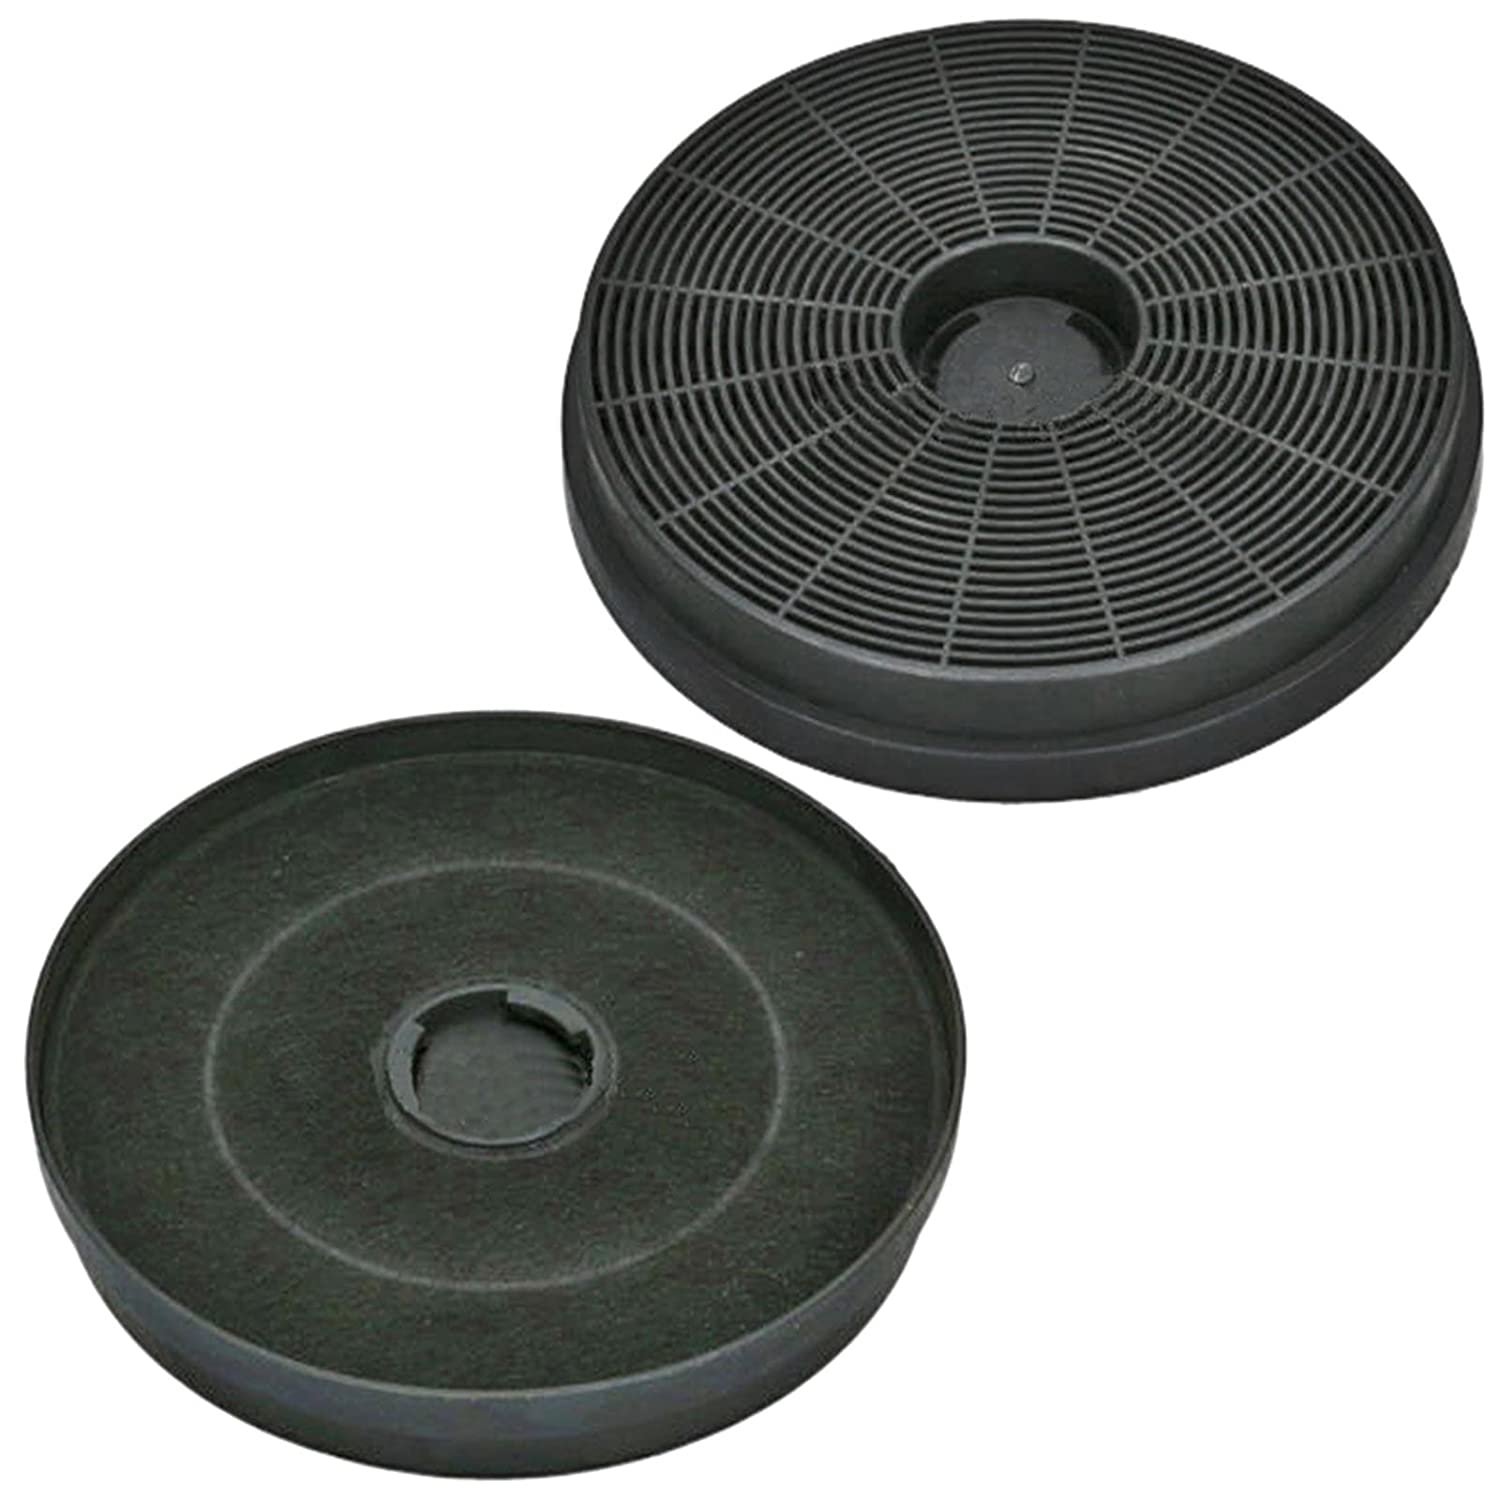 SPARES2GO Active Carbon Vent Filter for Stoves Cooker Hood Extractor (Pack of 2)